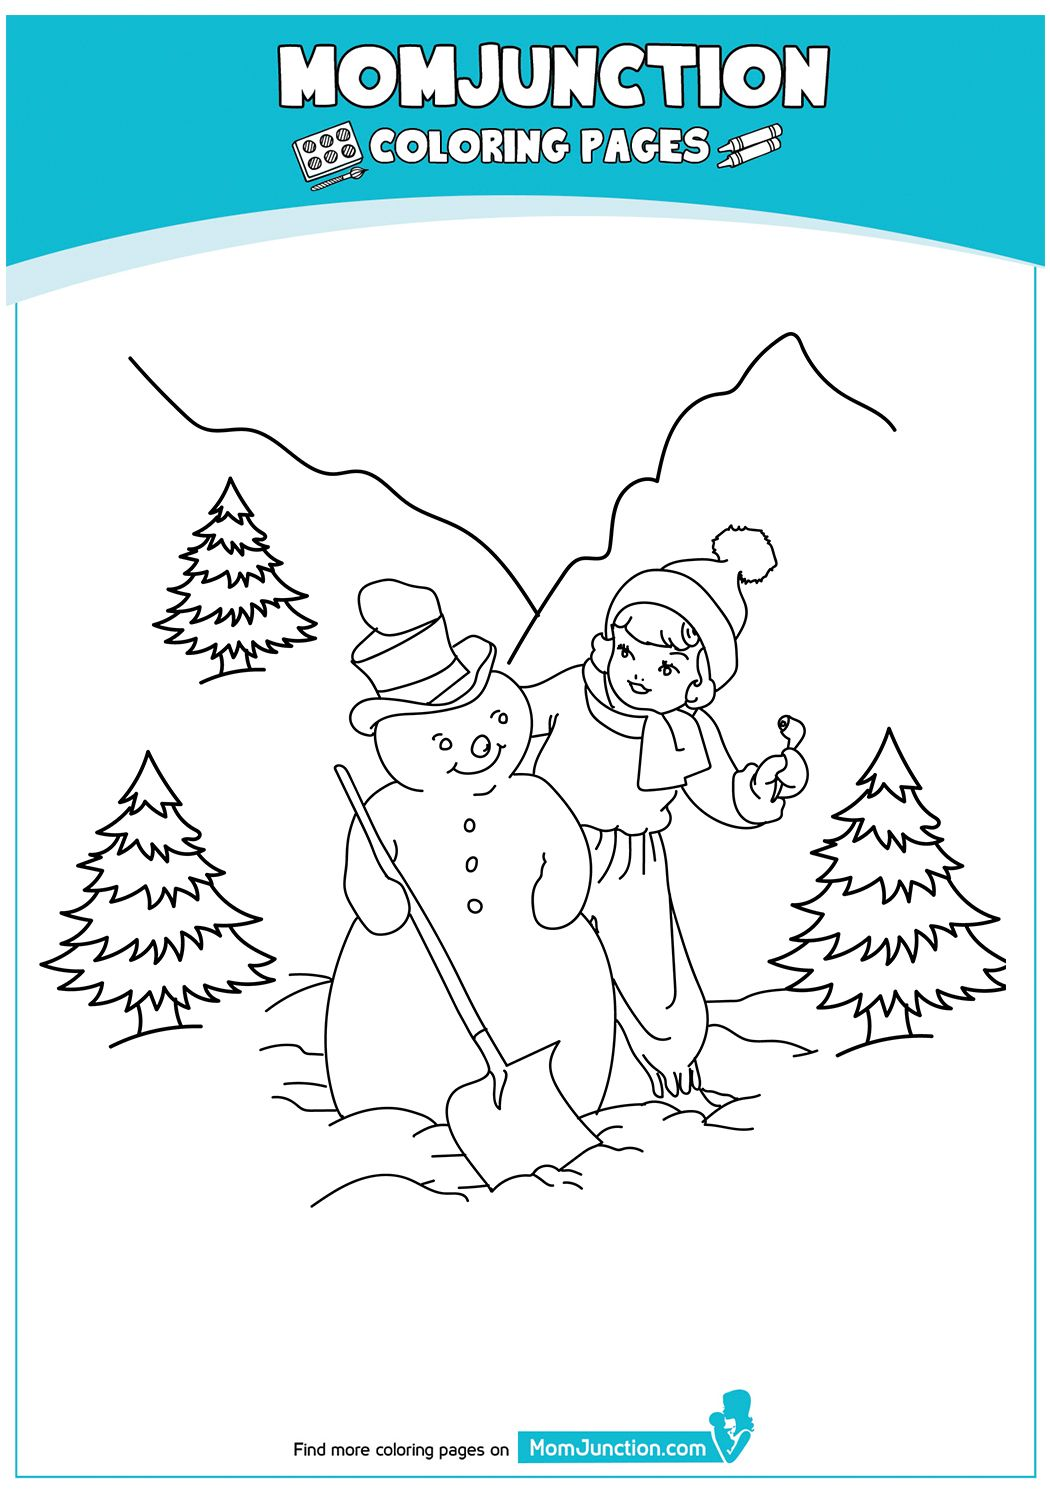 Top 20 Snowman Coloring Pages Your Toddler Will Love To